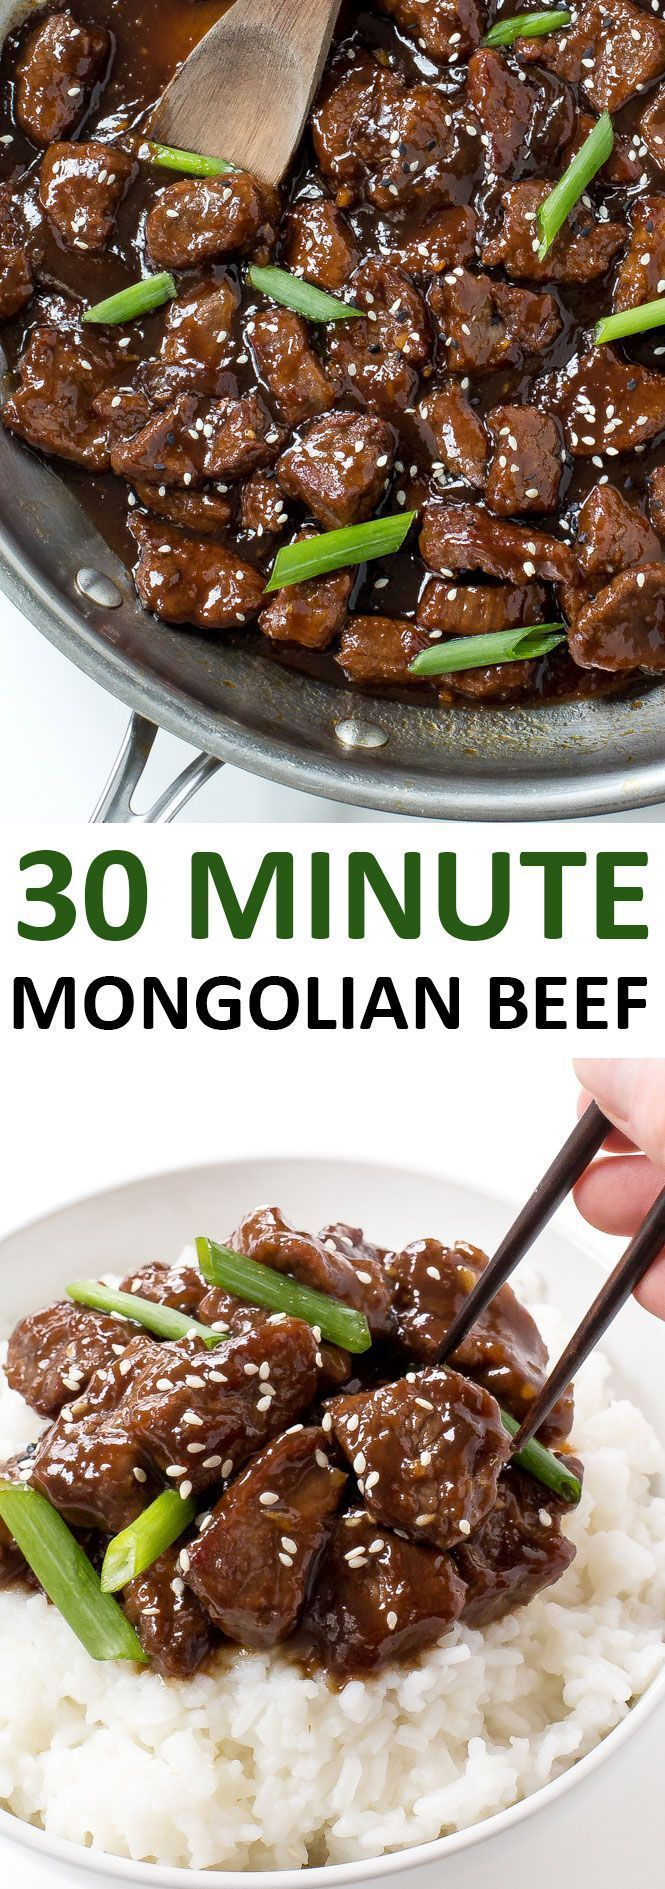 Amazing 30 Minute Mongolian Beef. Tender flank steak fried and tossed in a thick Asian inspired sauce. Way better than takeout! | Posted By: DebbieNet.com